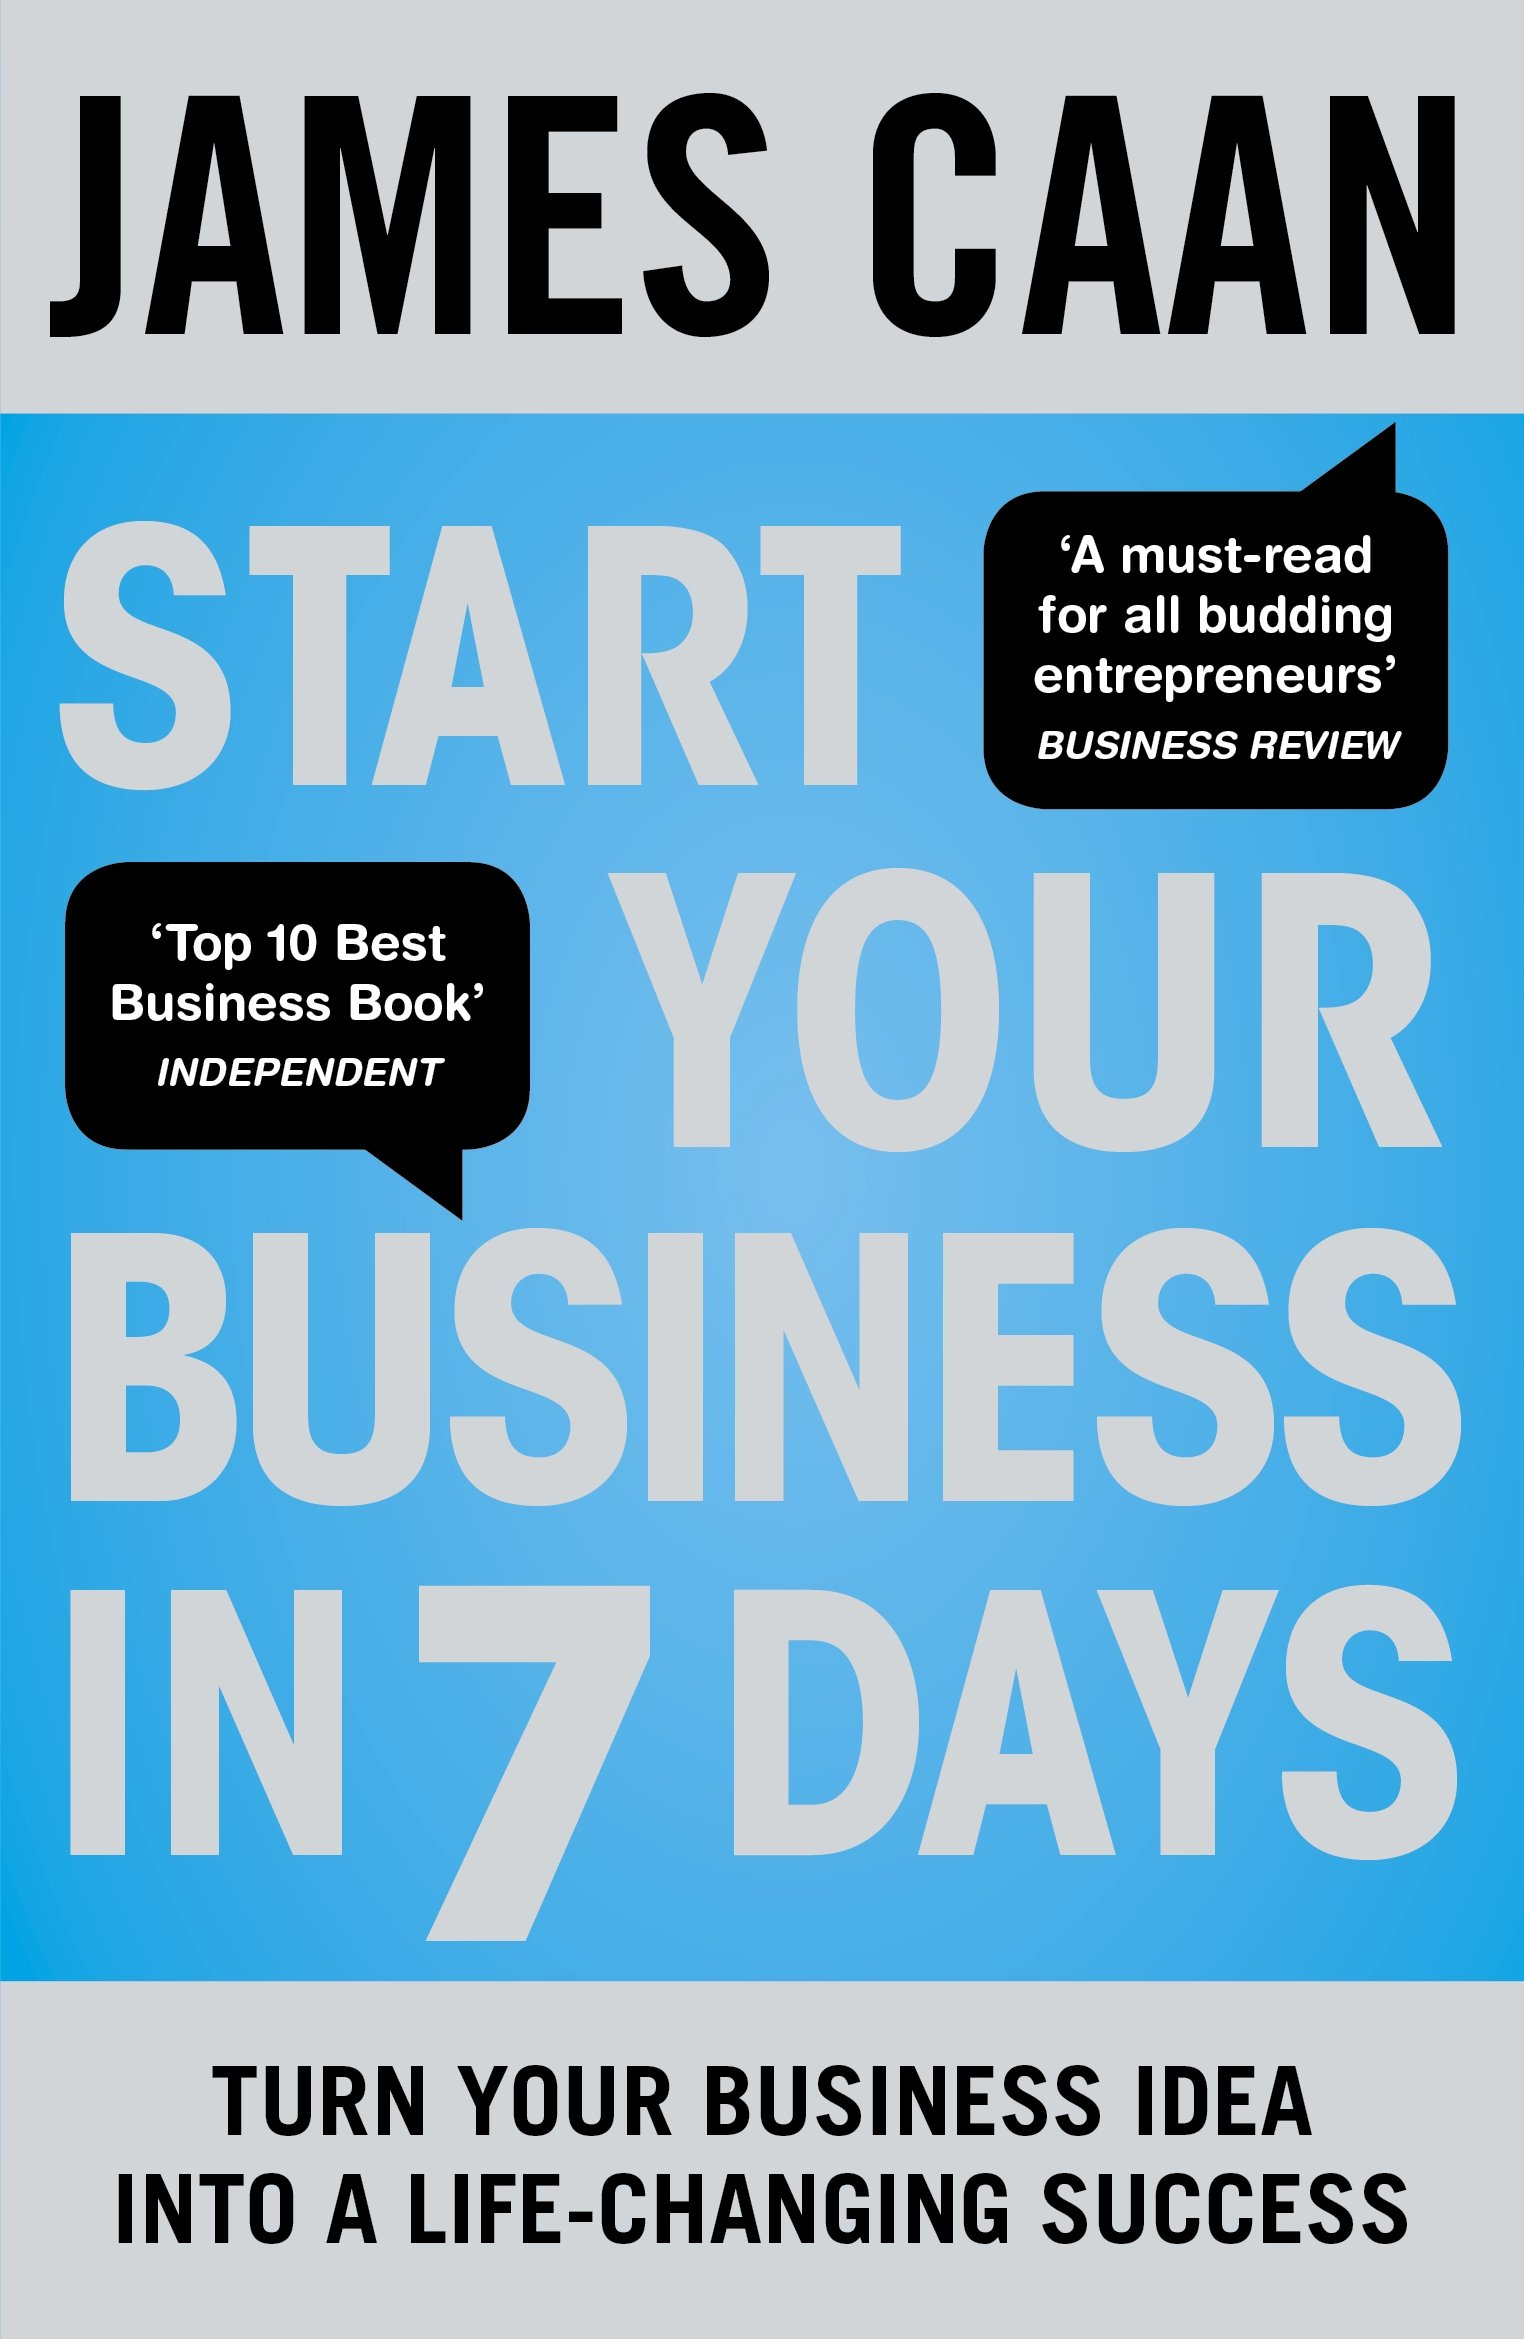 get the job you really want amazon co uk james caan start your business in 7 days turn your idea into a life changing success